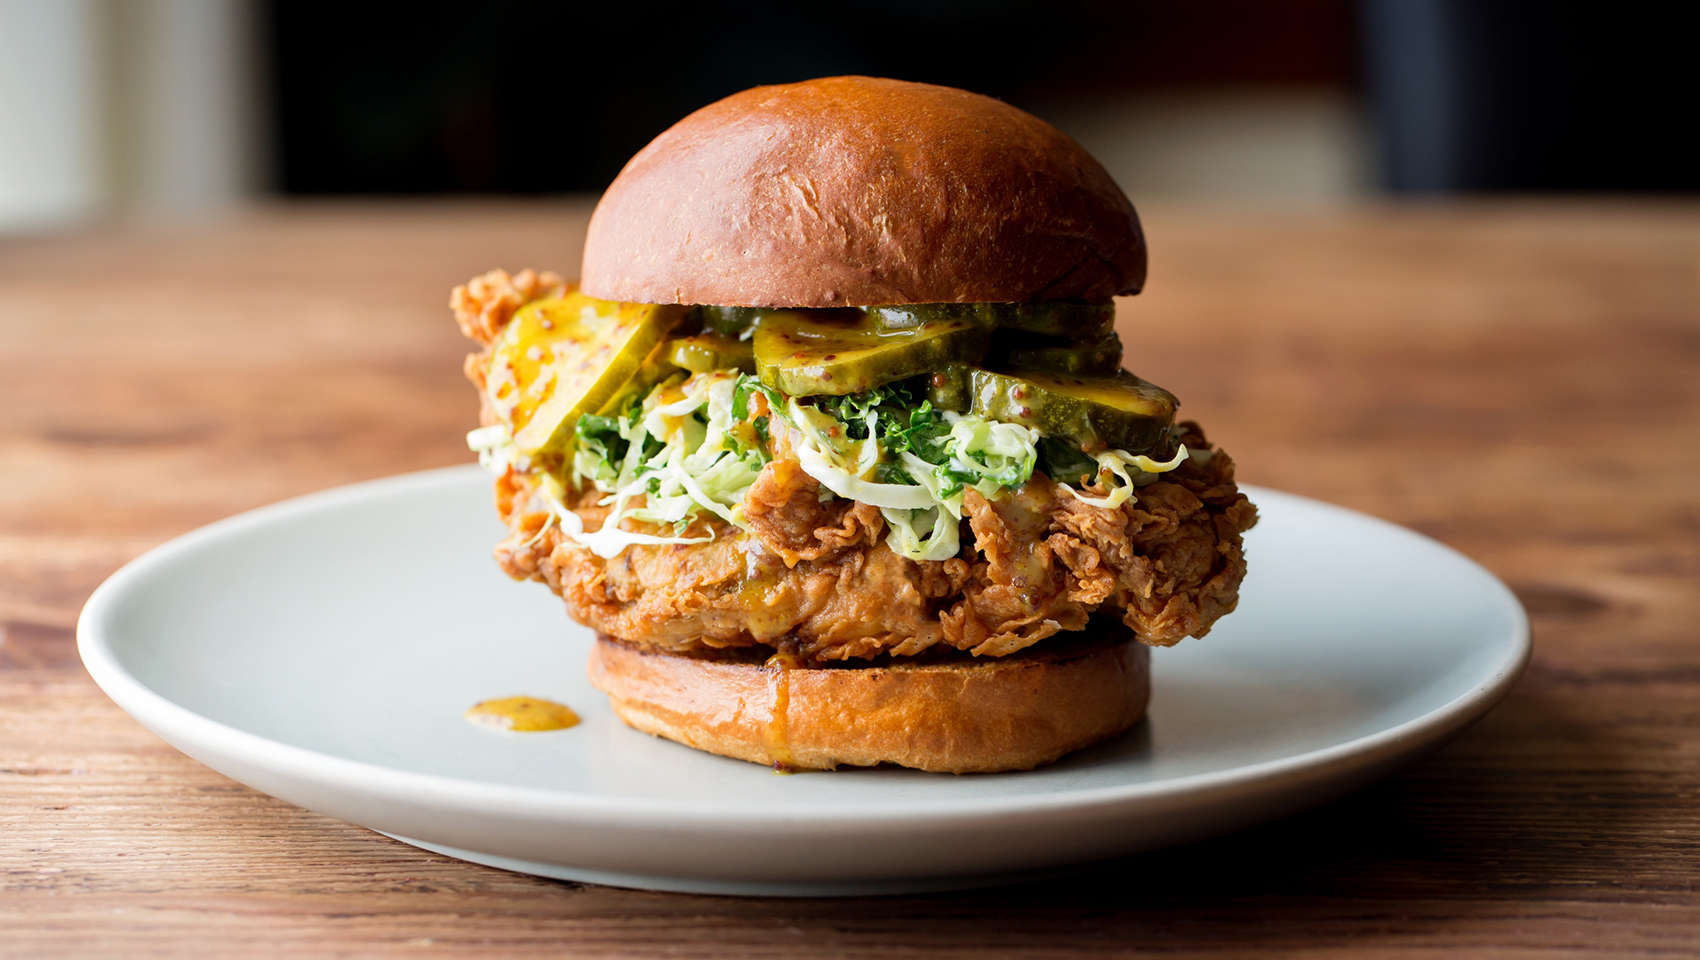 The Best Chicken Sandwich at Finch and Fork